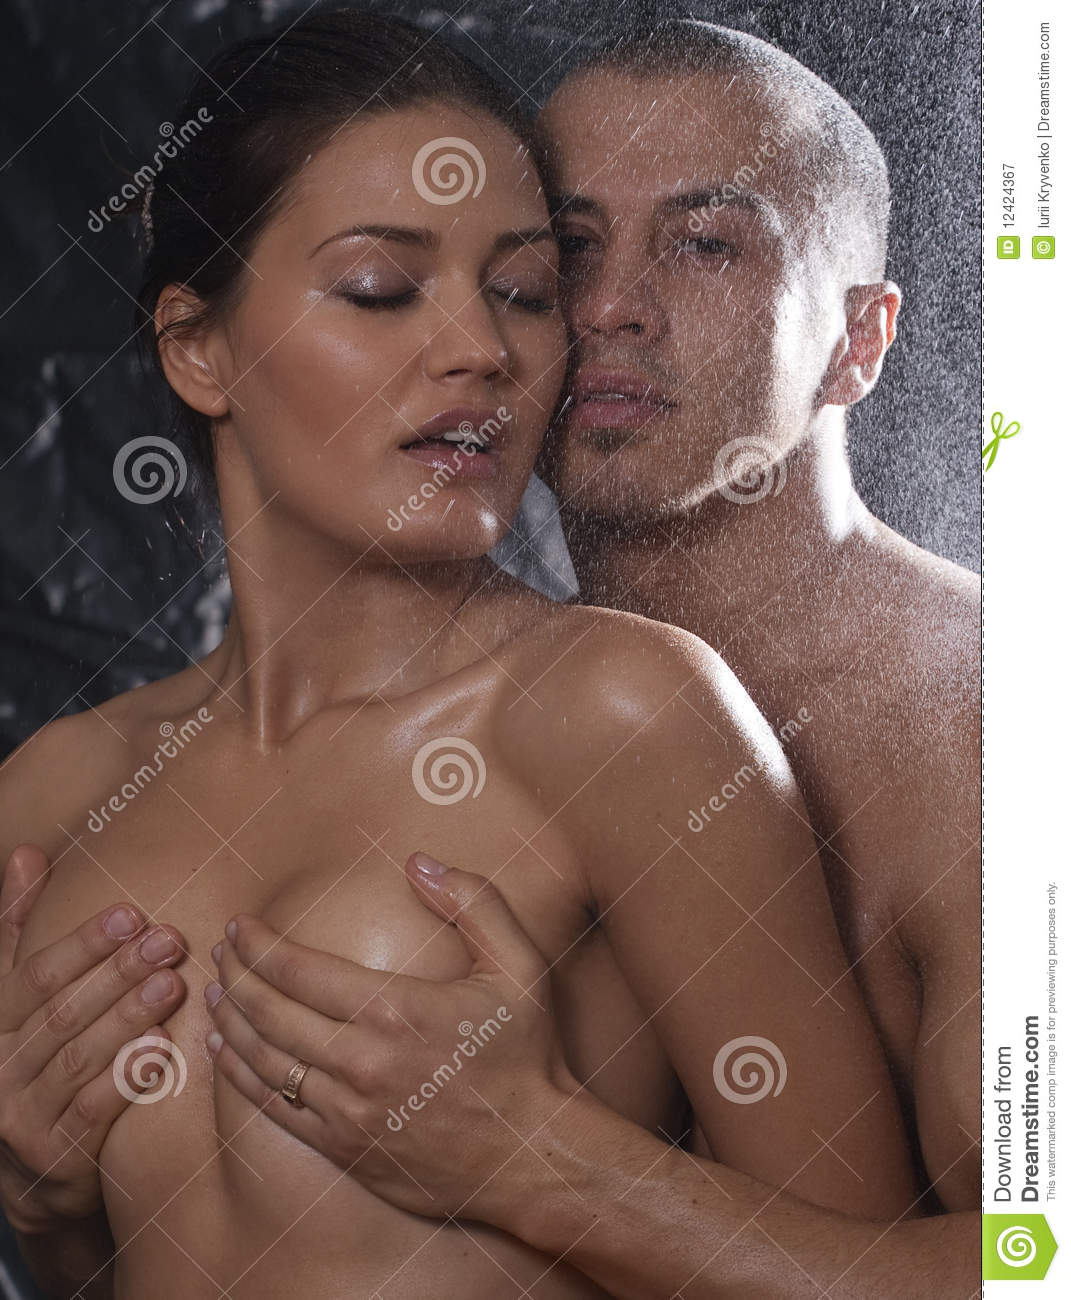 Men touching and sucking boobs images sexual pics